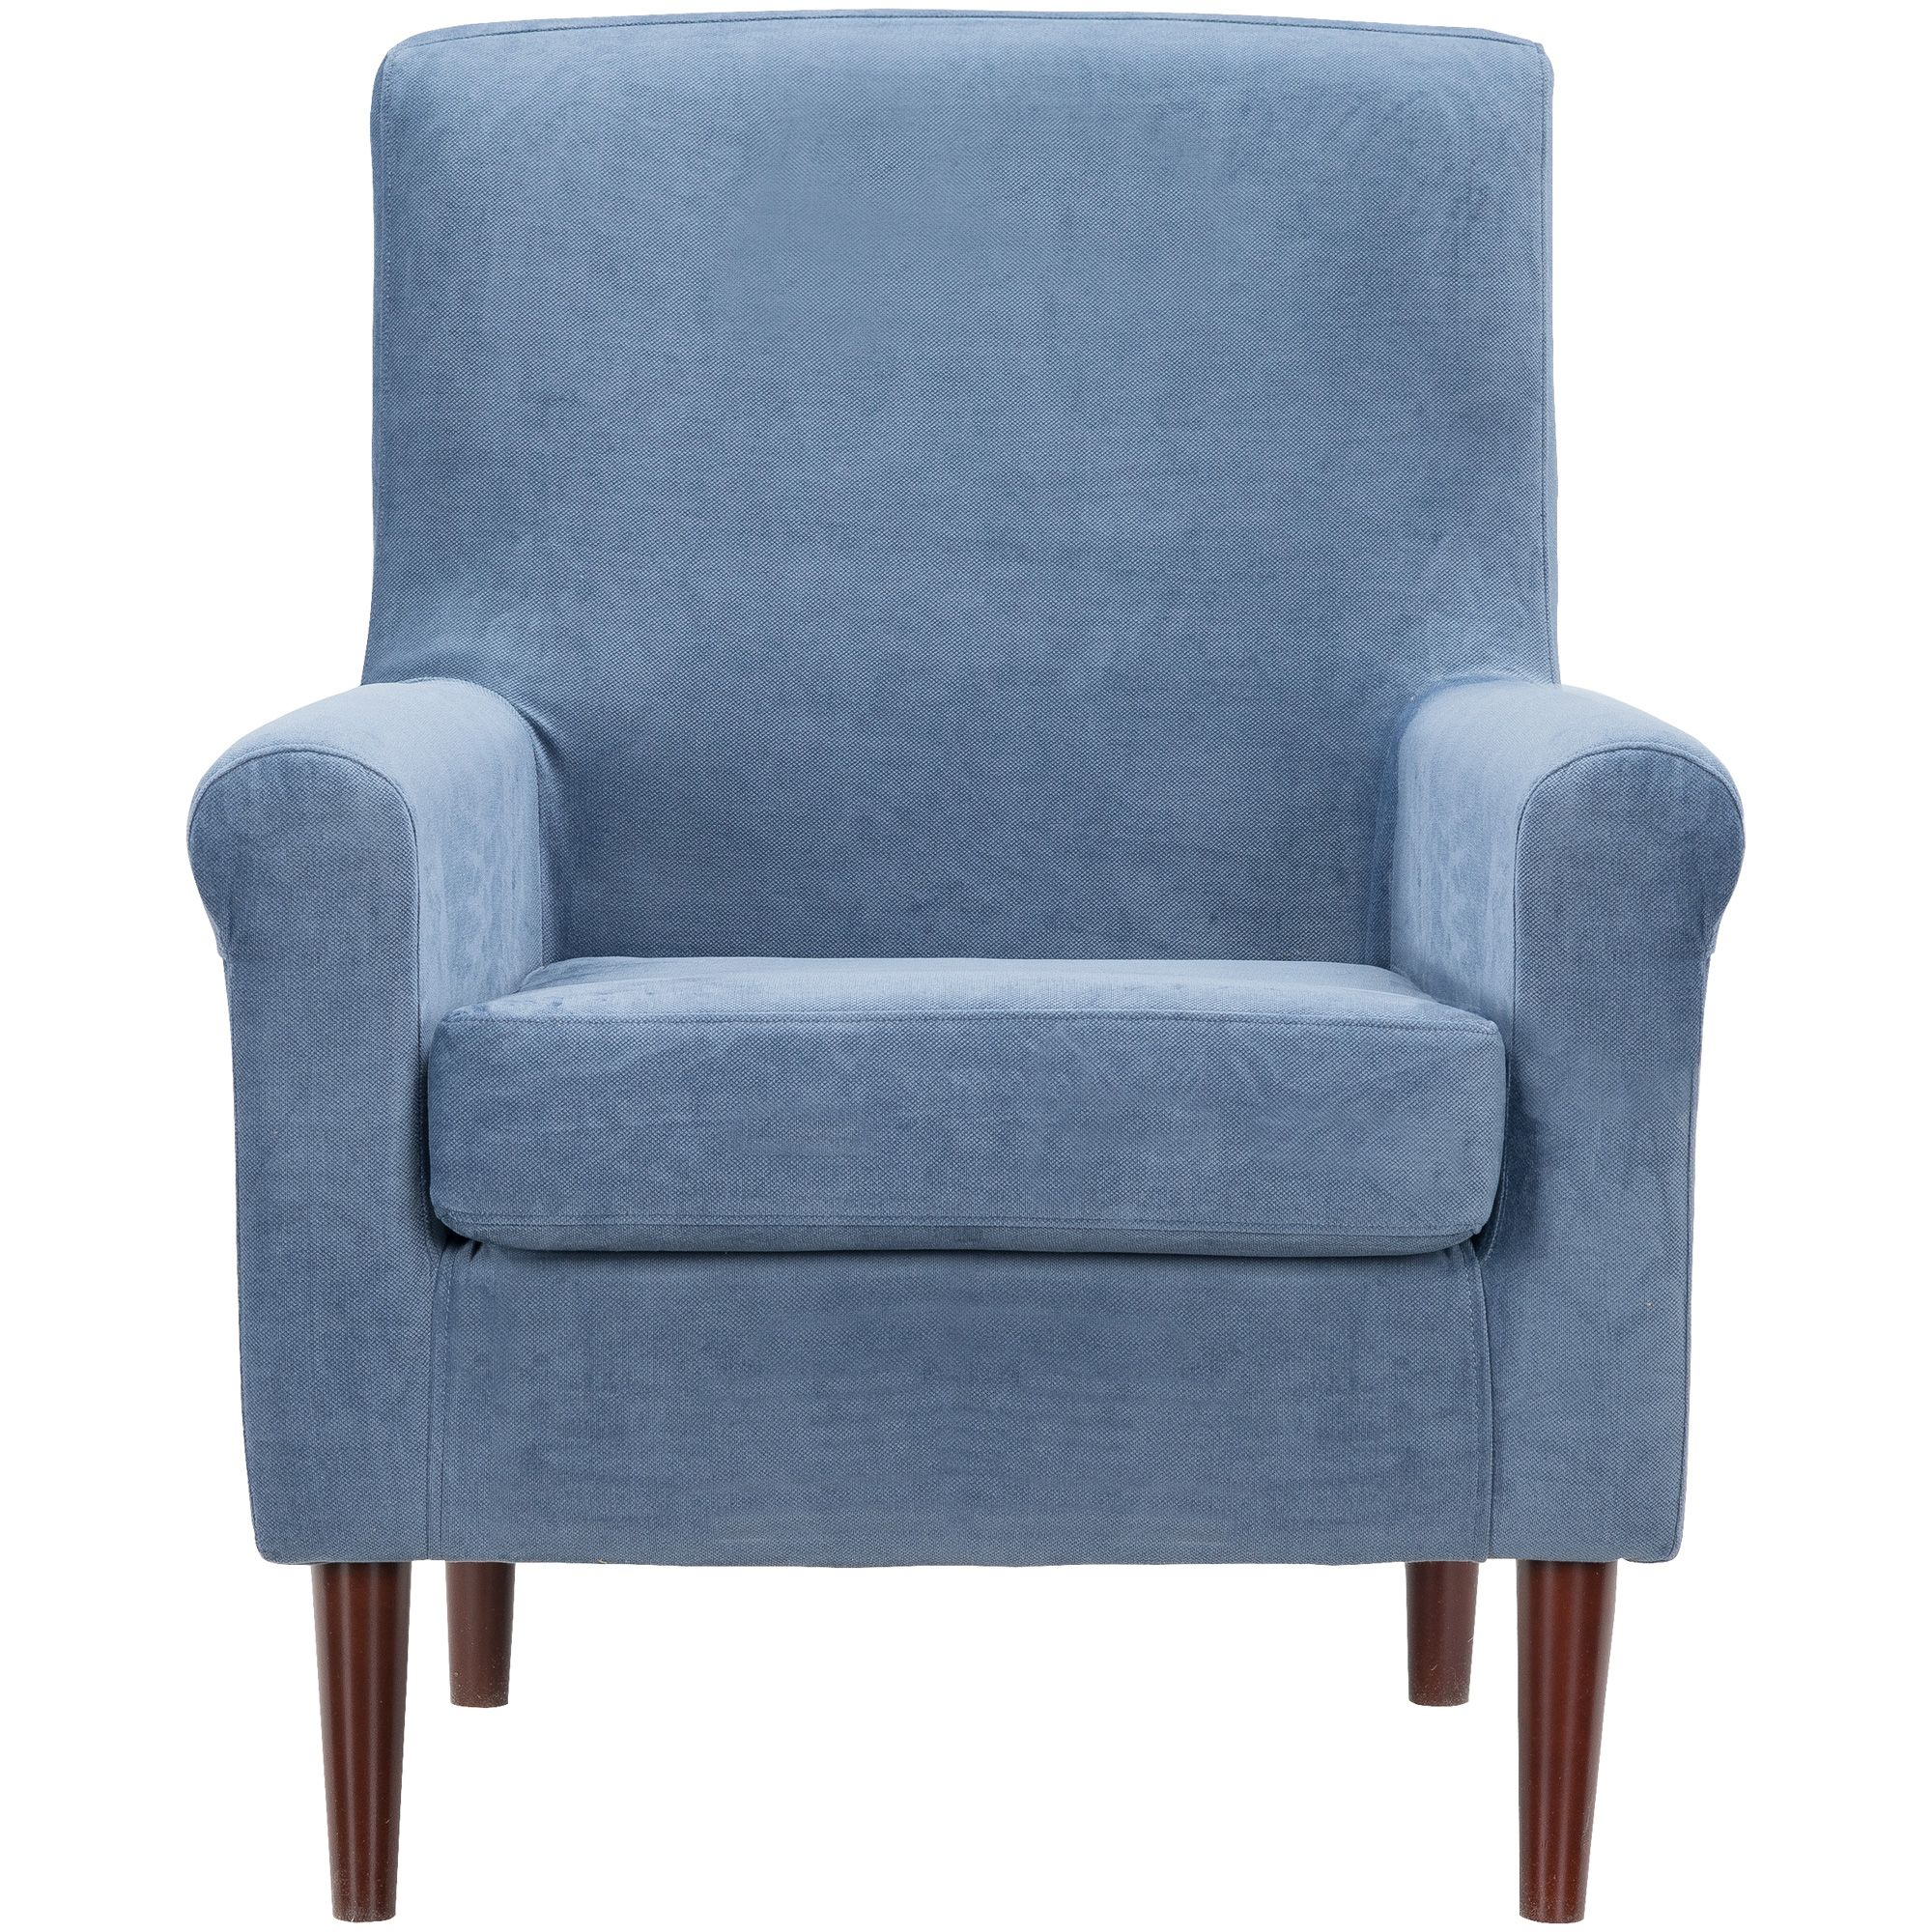 10++ Accent chairs for living room on sale ideas in 2021